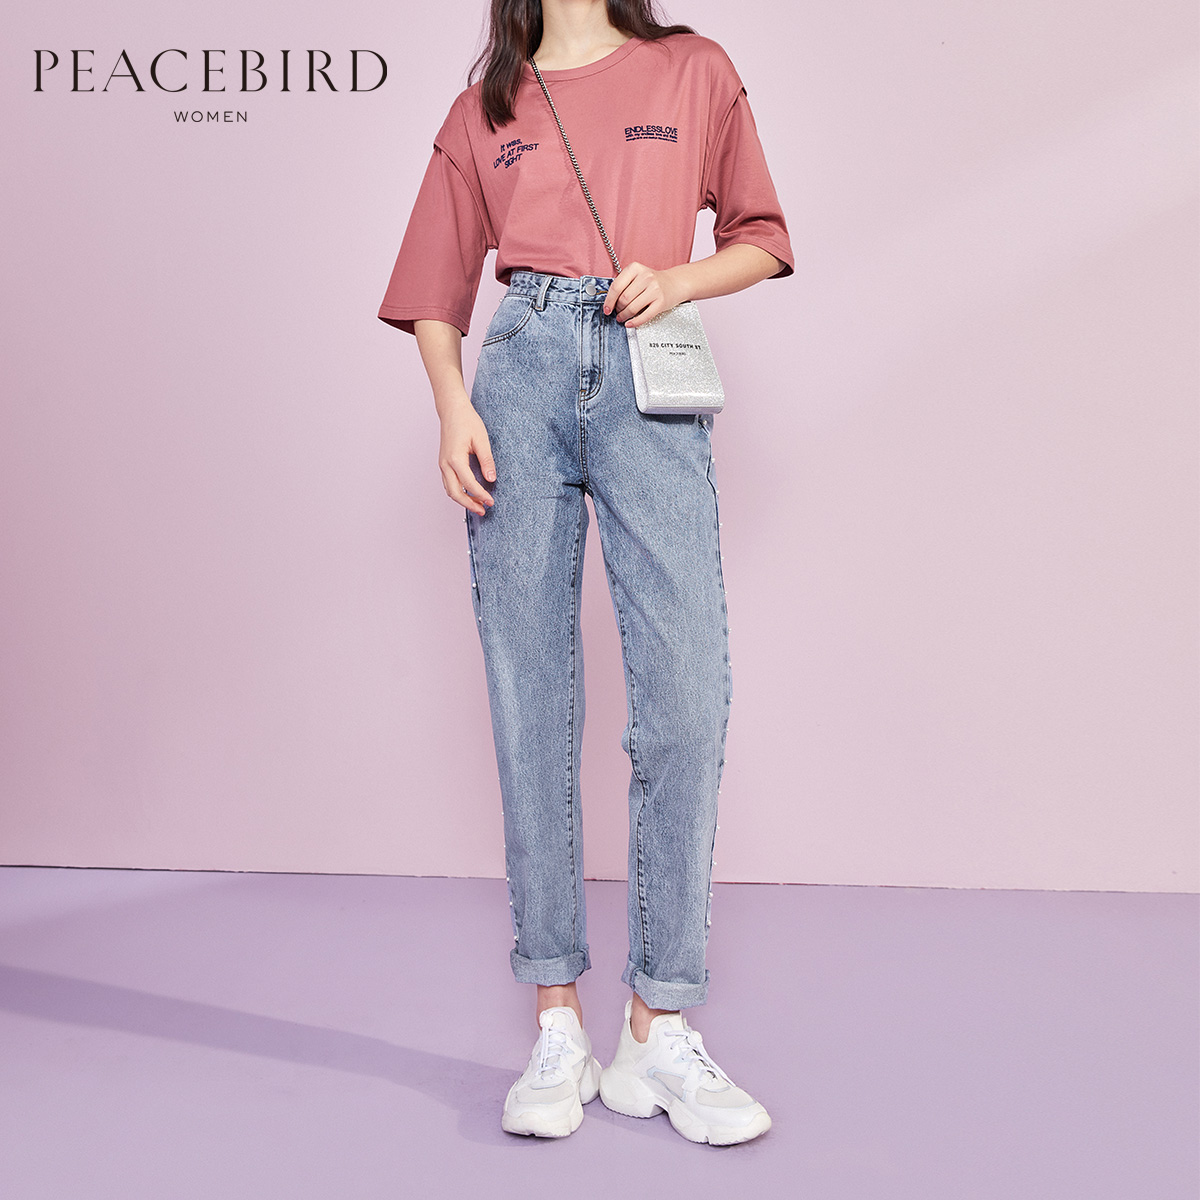 Taiping bird high waist jeans women's spring dress 2020 new leisure pearl embellishment tapered jeans women's fashion